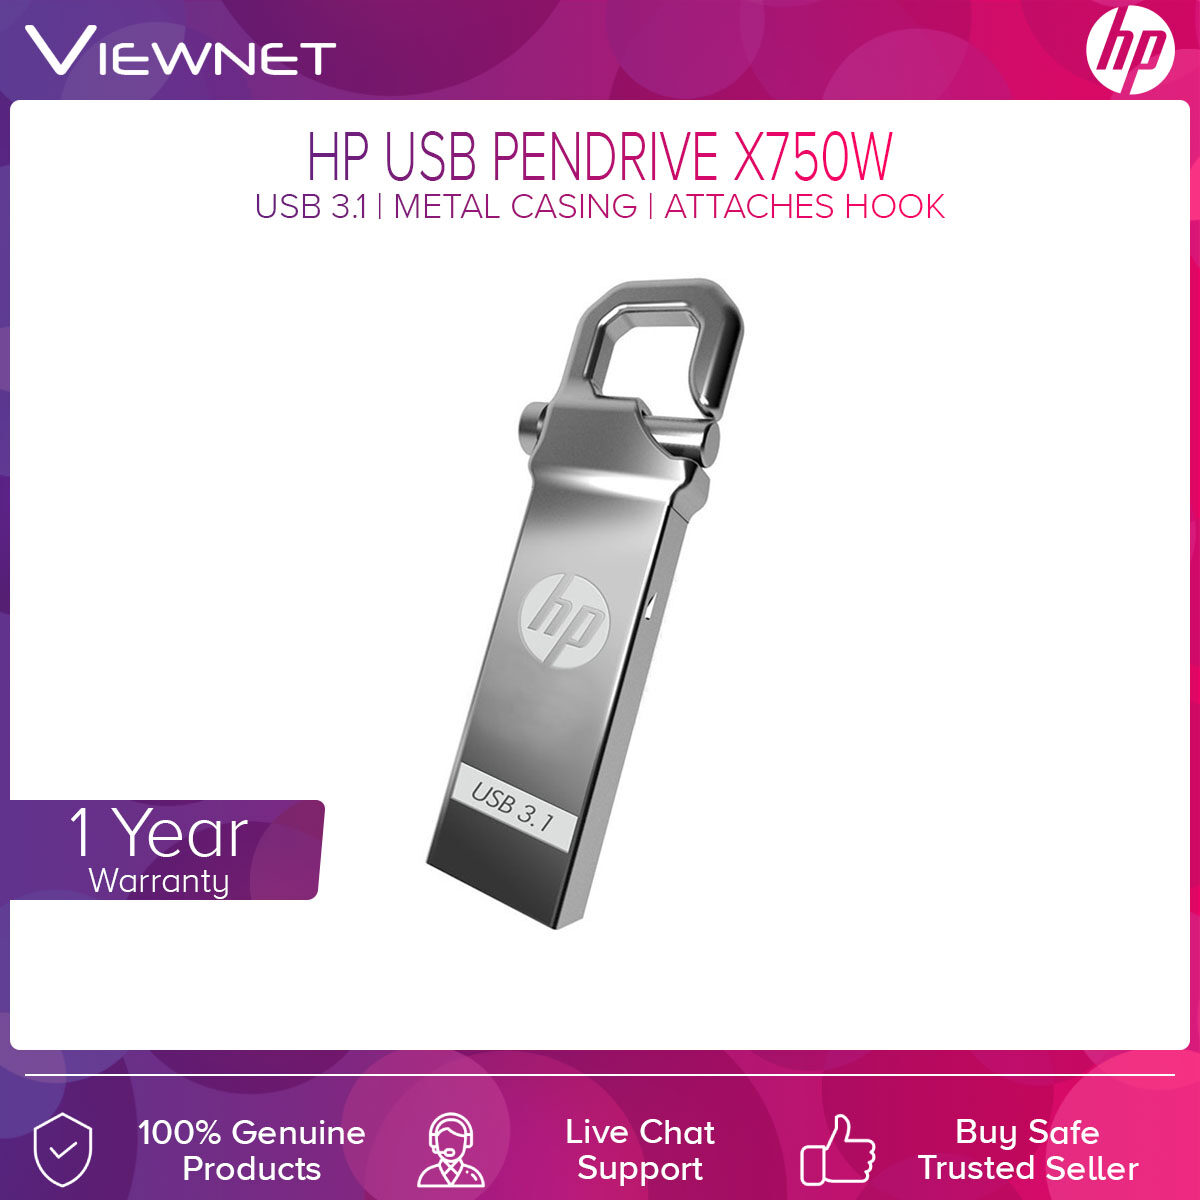 HP USB Pendrive X750W with USB 3.1 Connection, Metal Casing, Attaches Hook